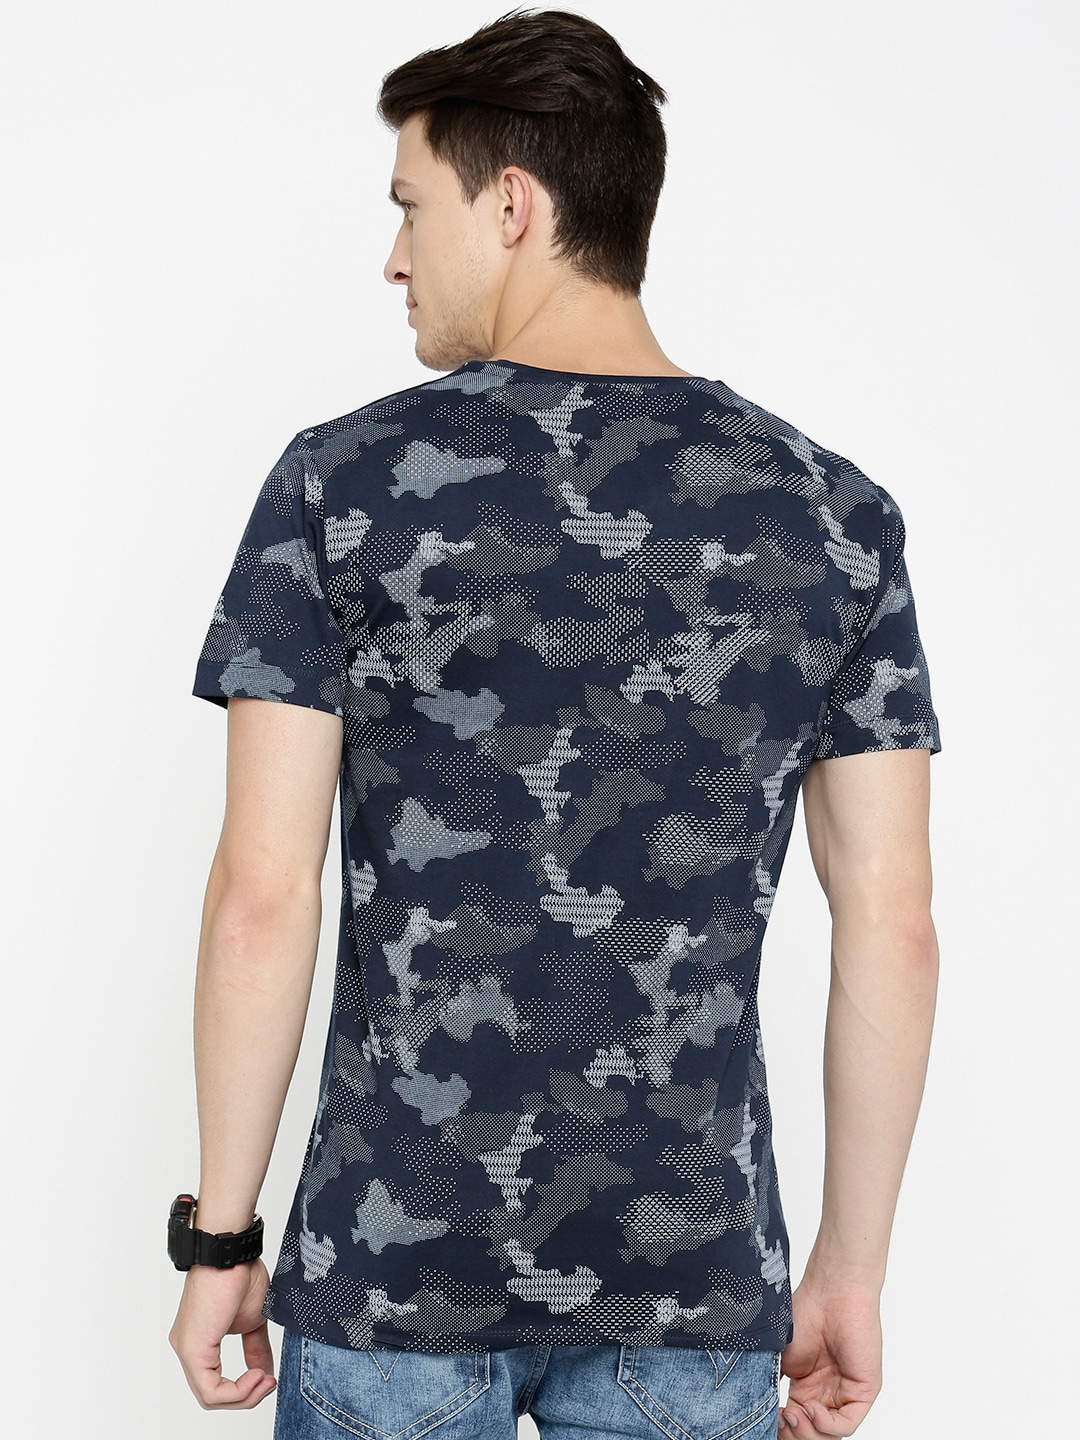 Design your t shirt myntra - Flying Machine T Shirts Buy Flying Machine T Shirts For Men Women Online In India At Best Price